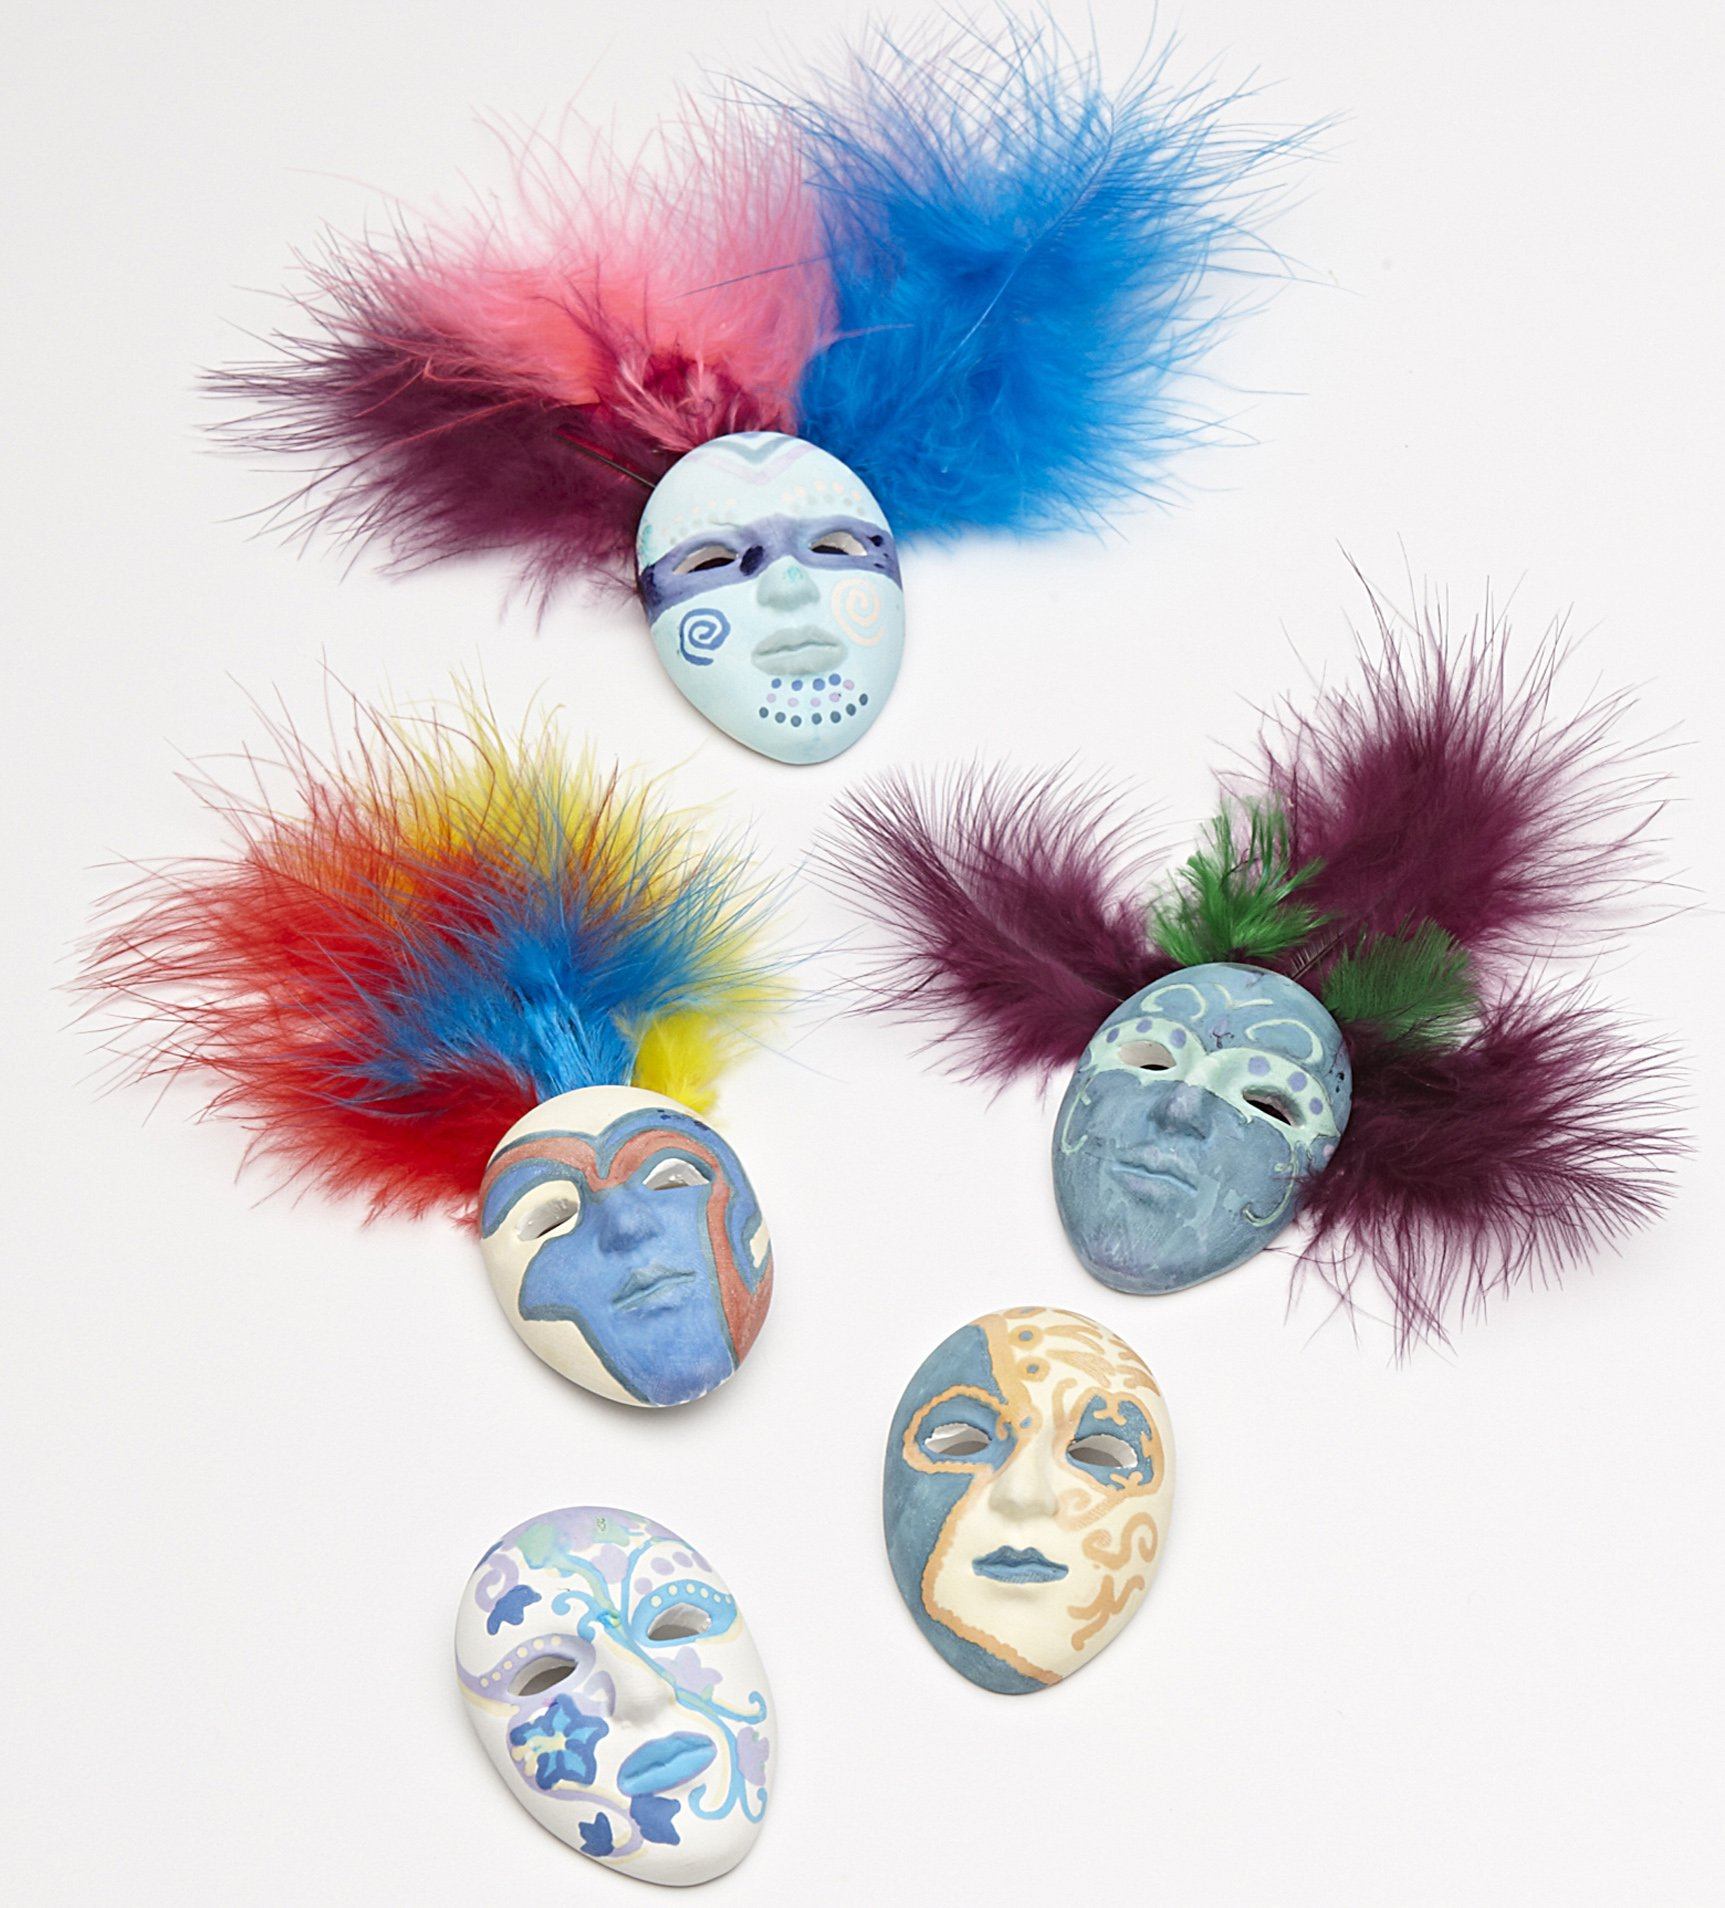 Mardi Gras - Carnaval - Karneval - Ceramic Mask Magnet Kit (Makes 30 Masks)